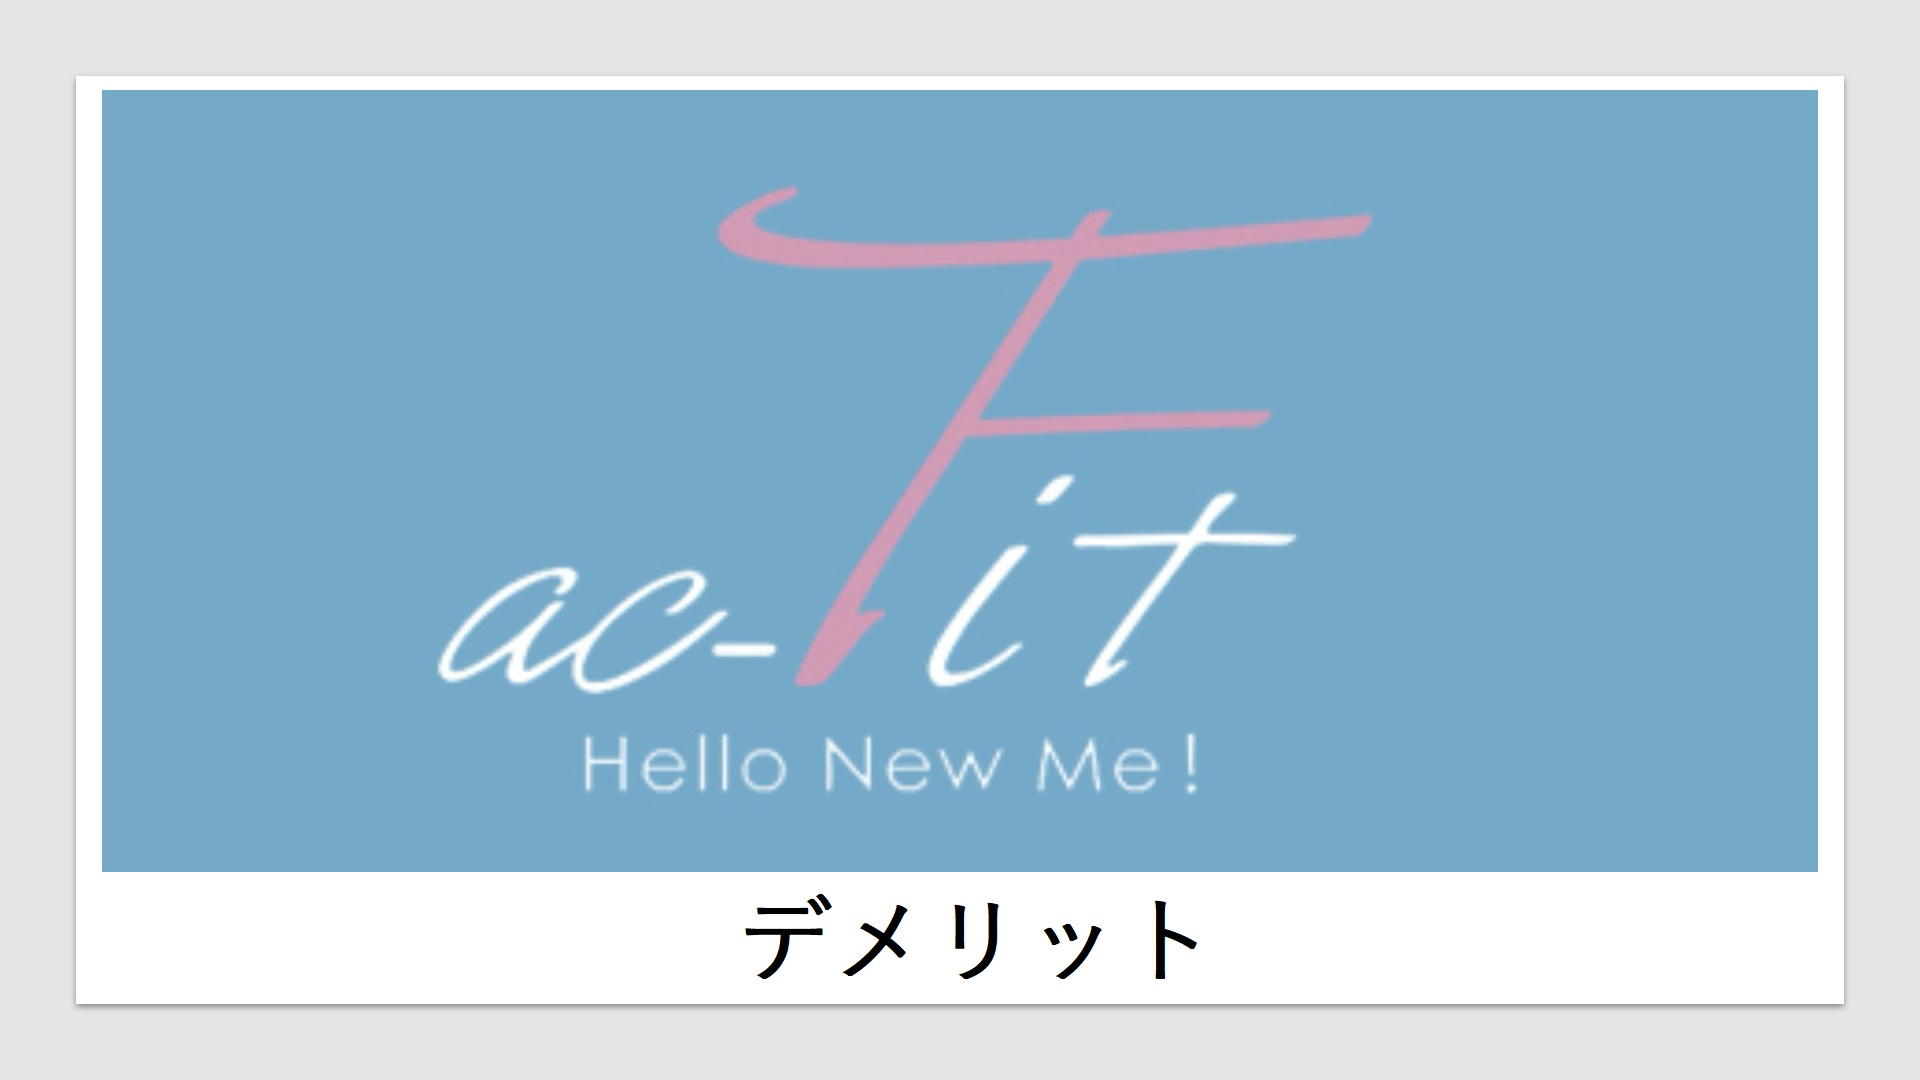 ac-fit(デメリット)